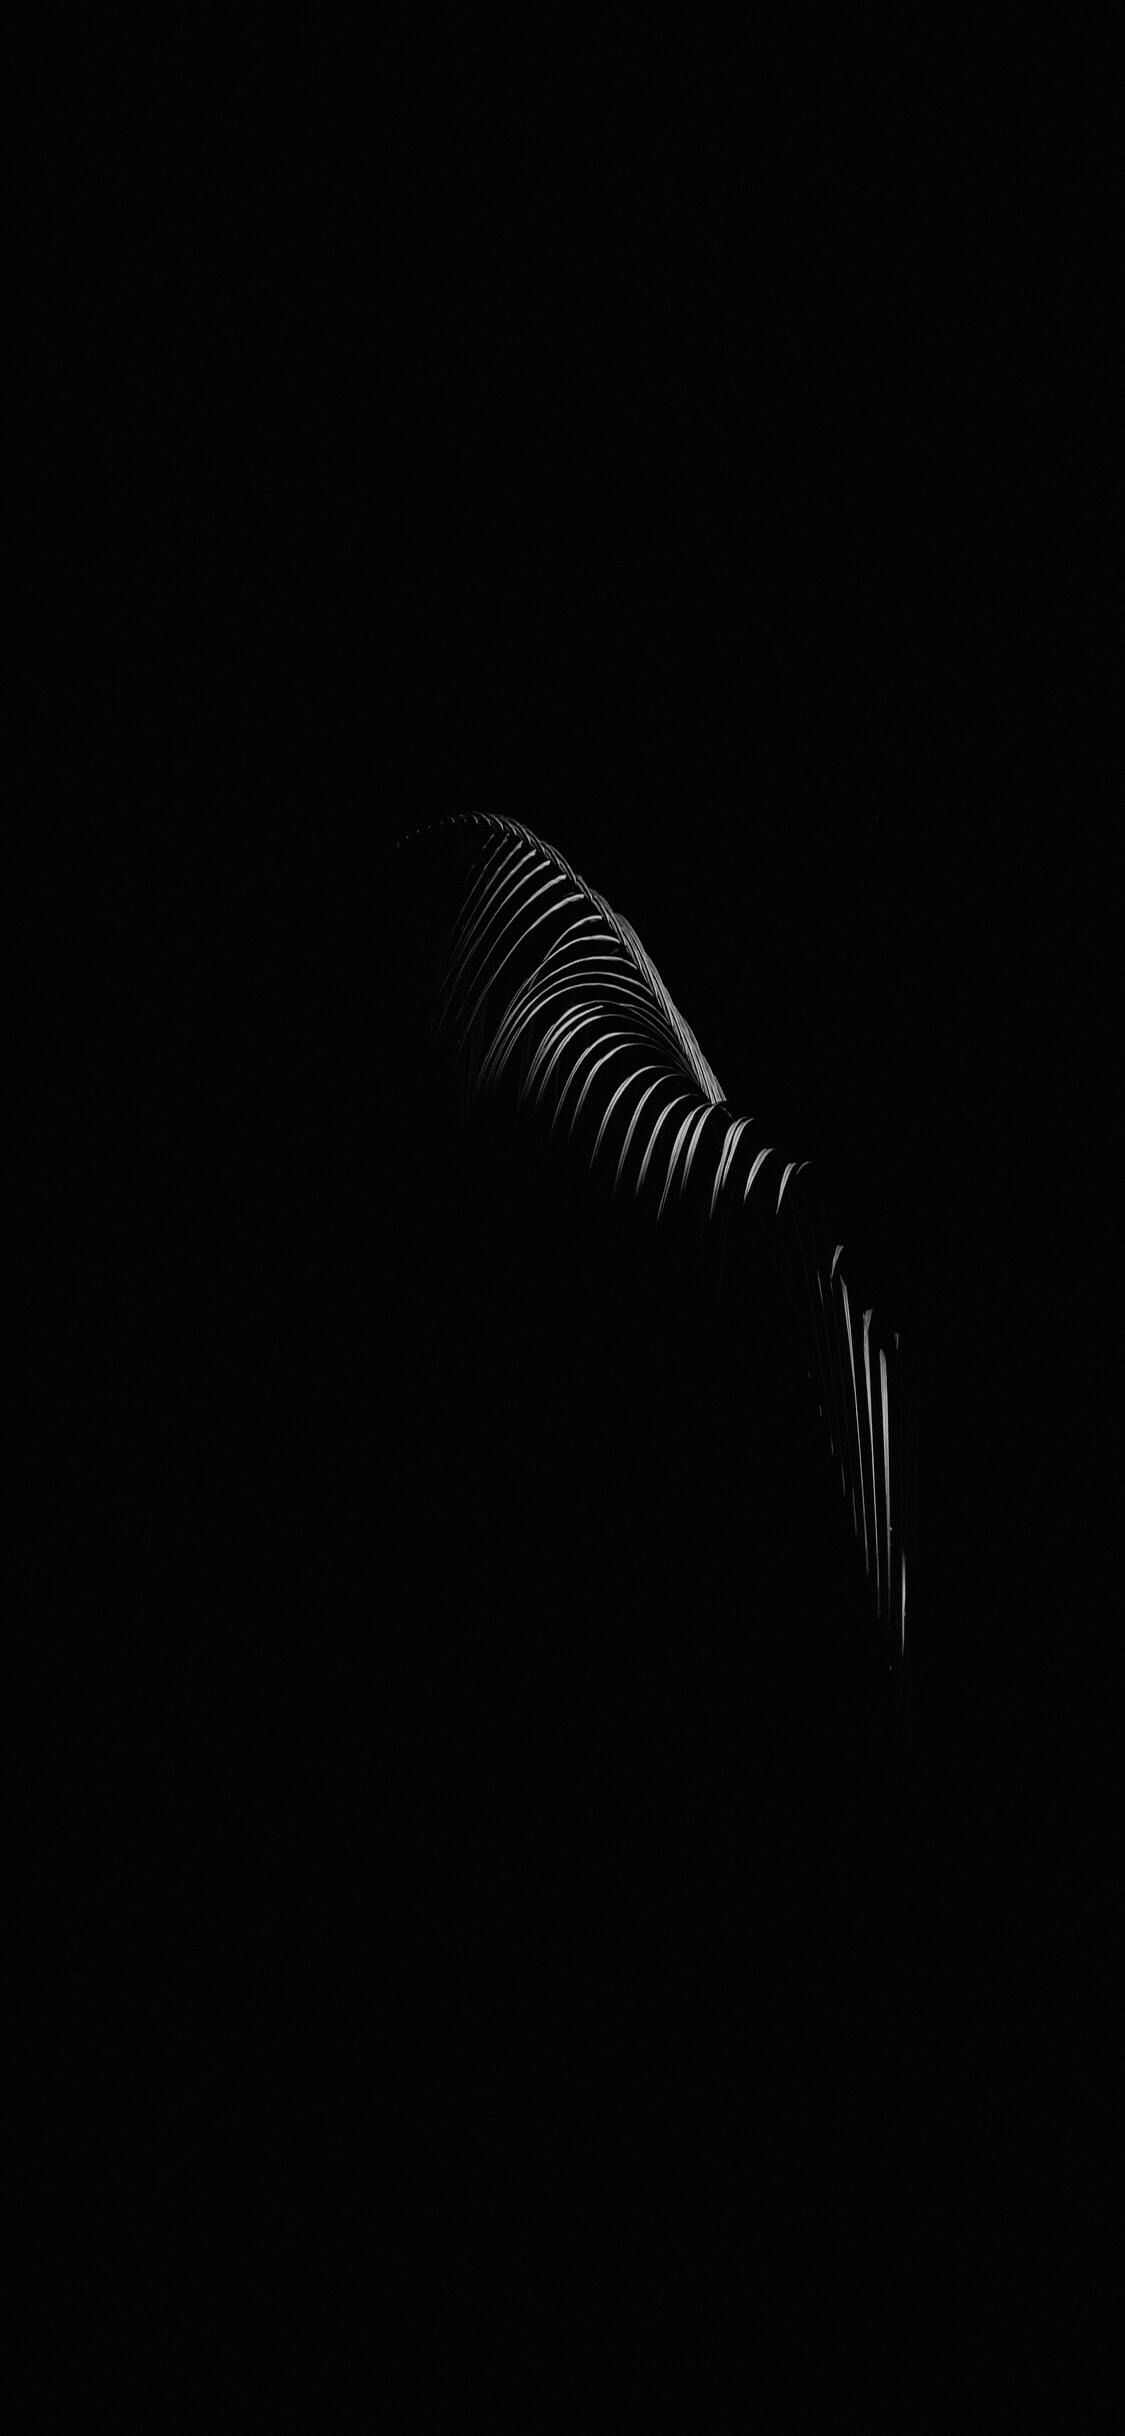 Black Wallpaper Hd For Iphone Android Wallpaper Black Black Wallpaper Black Wallpaper Iphone